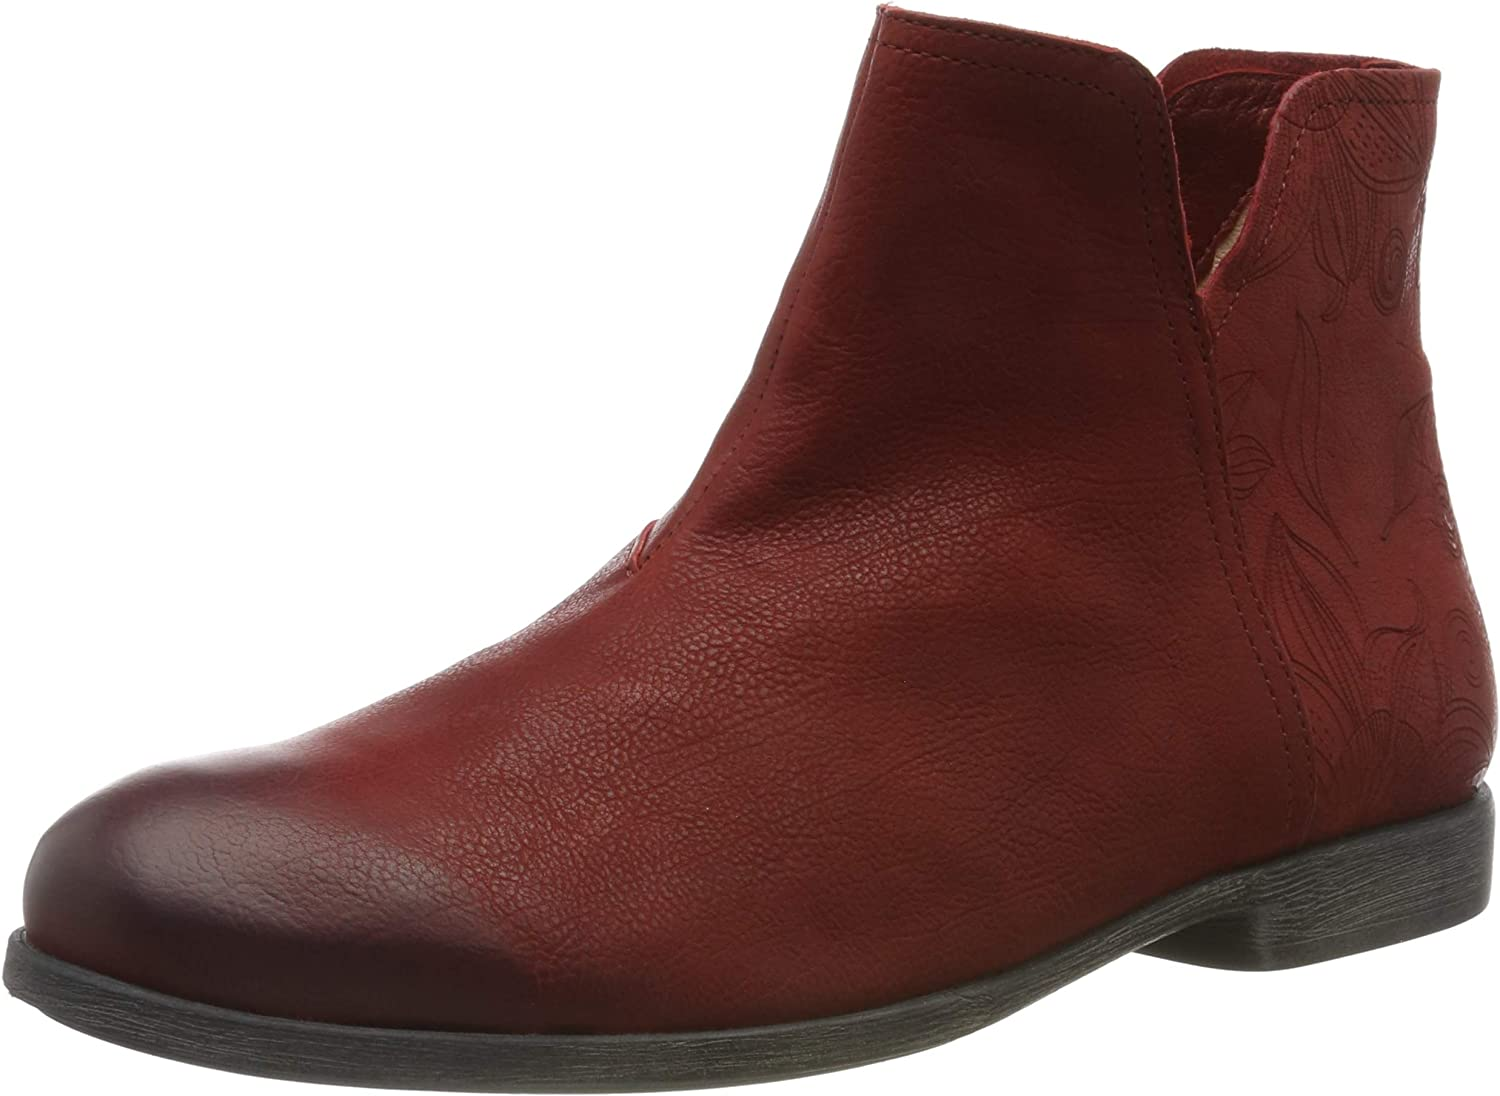 Think 気質アップ Women's boots Ankle レビューを書けば送料当店負担